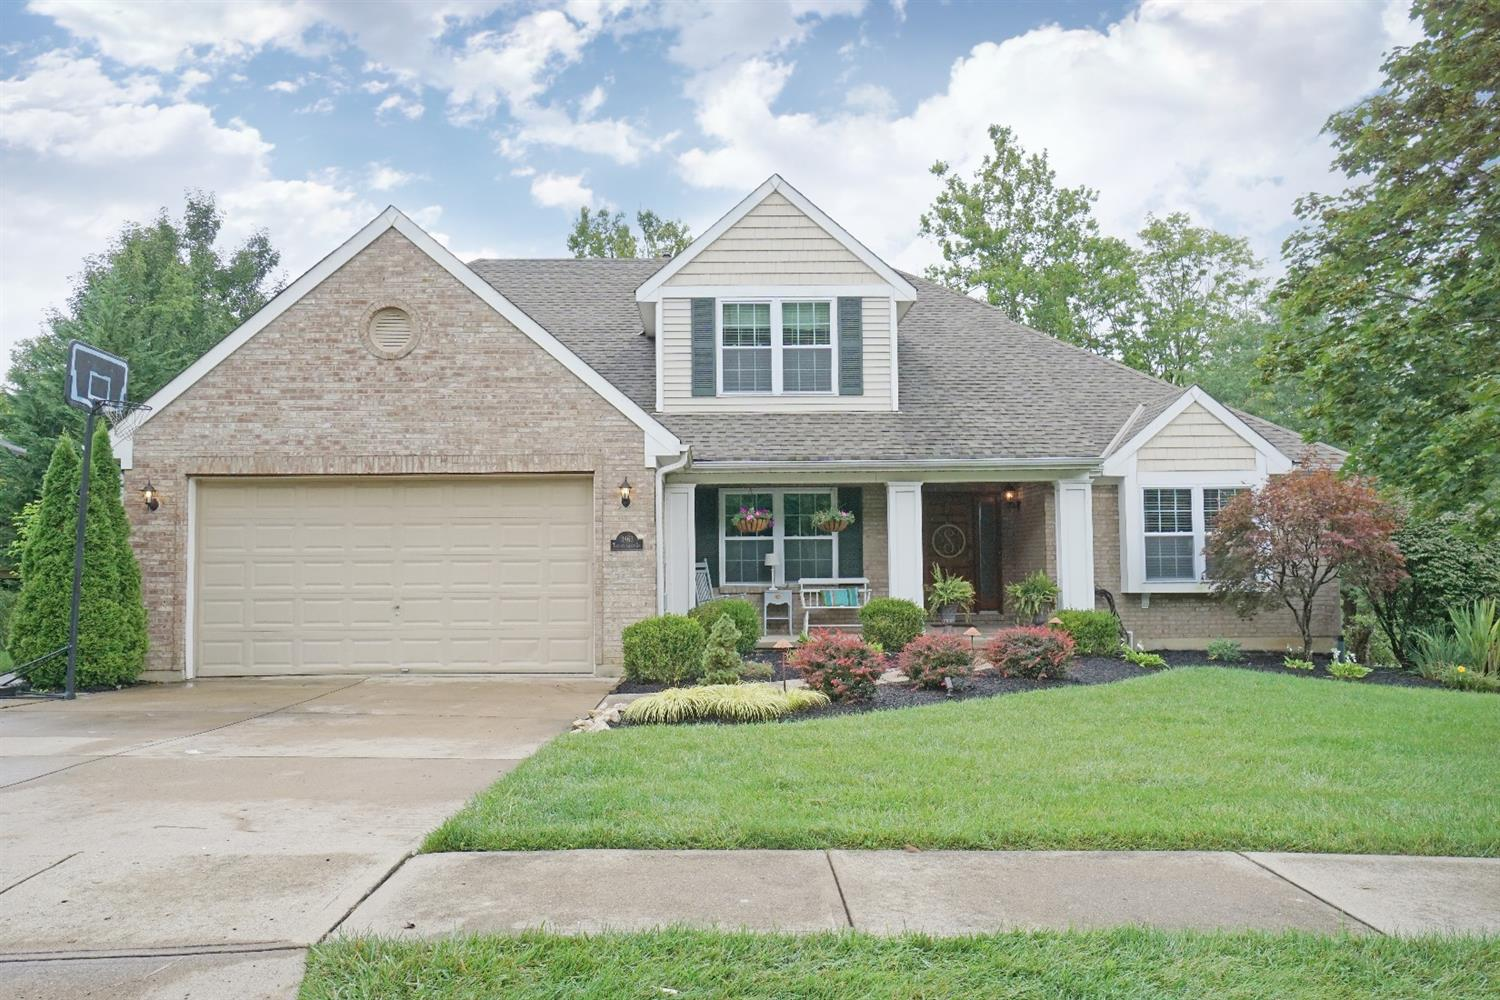 3863 Durango Green Dr Miami Twp. (West), OH